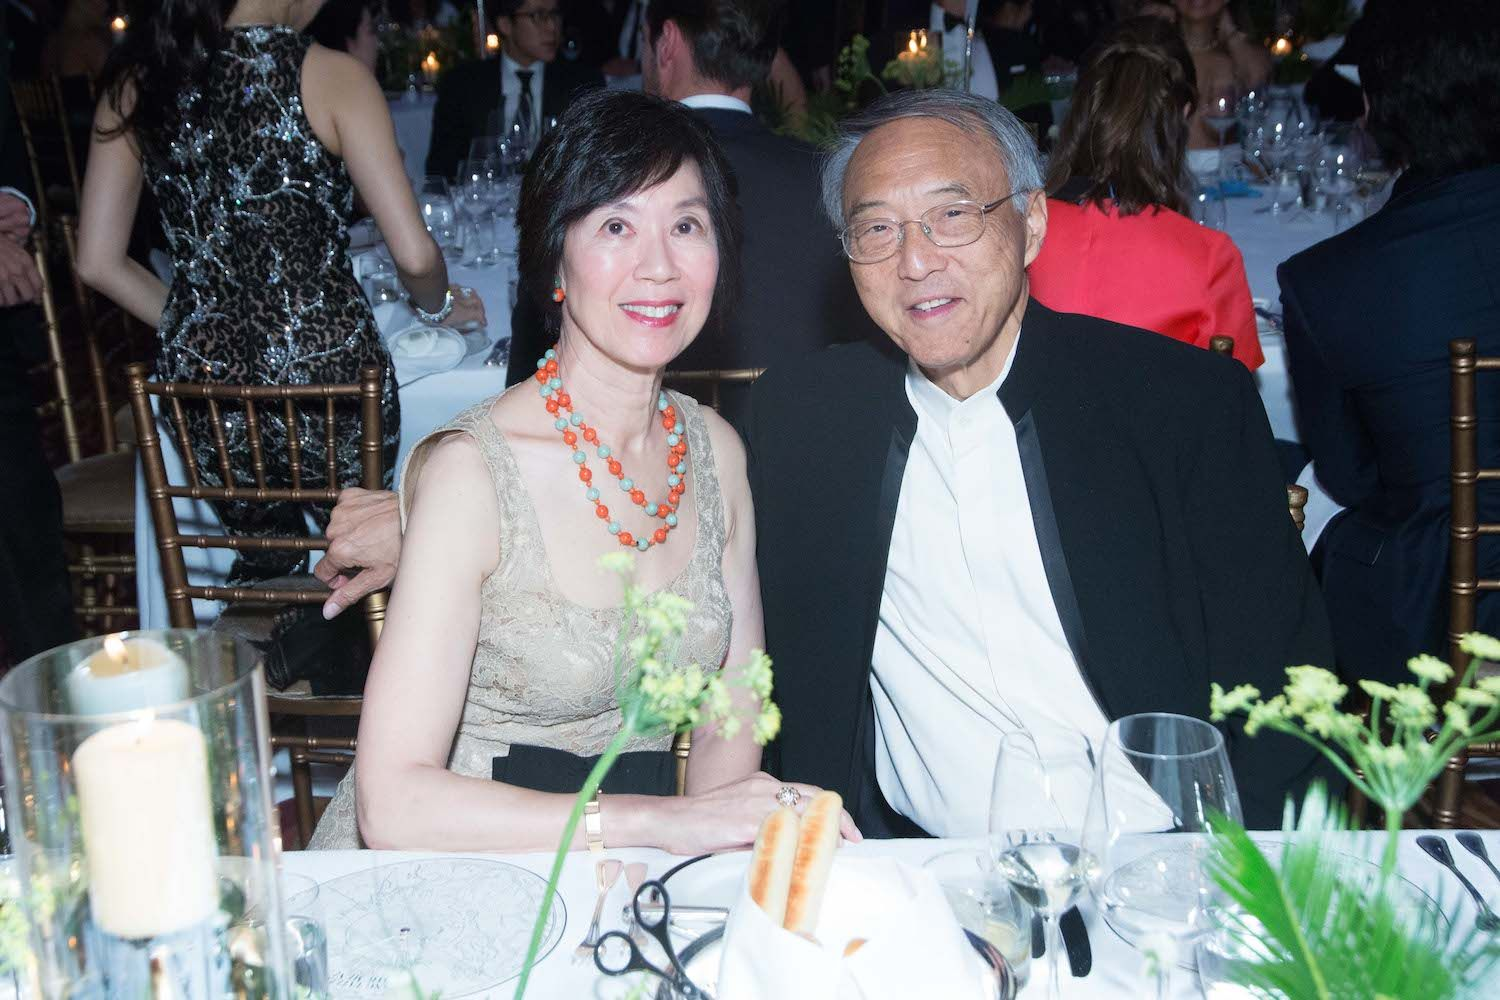 Harriet Tung and Chee-chen Tung